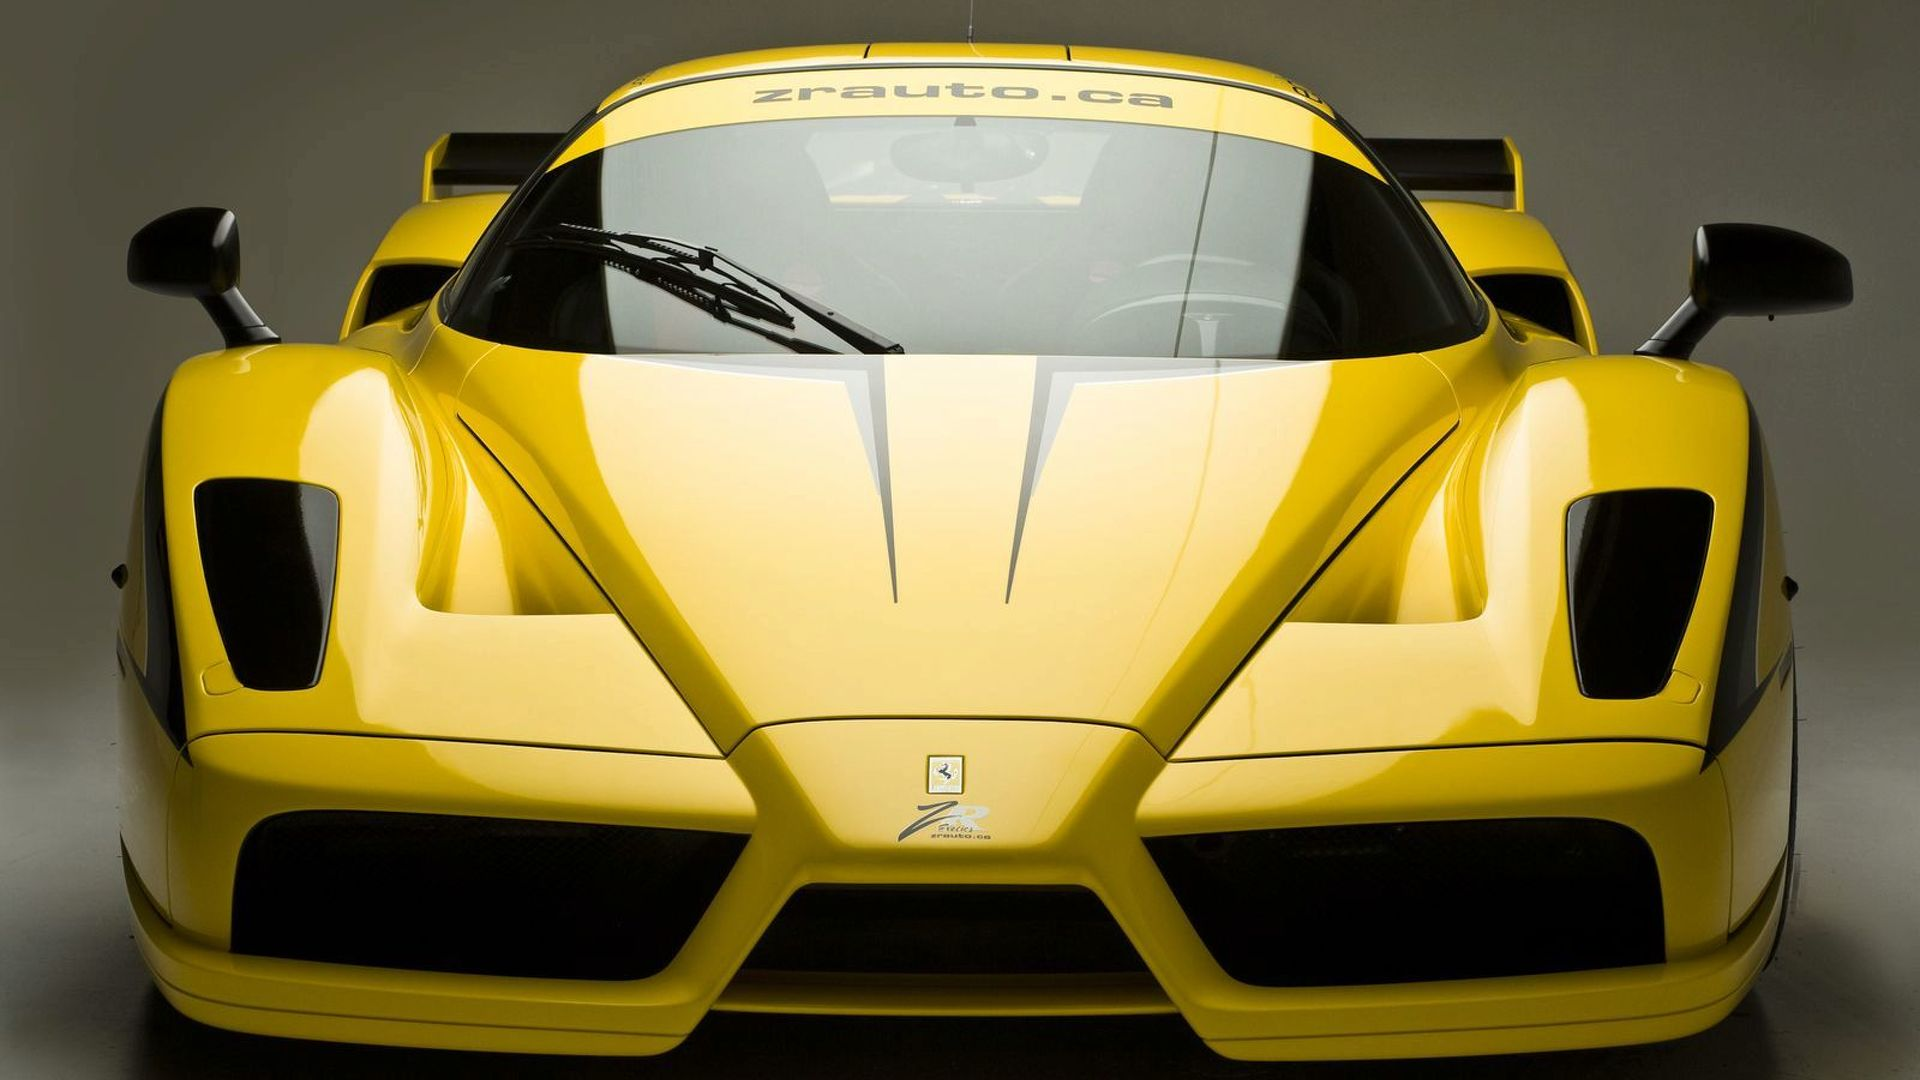 2012 Ferrari Enzo special series announced, five new models by 2013